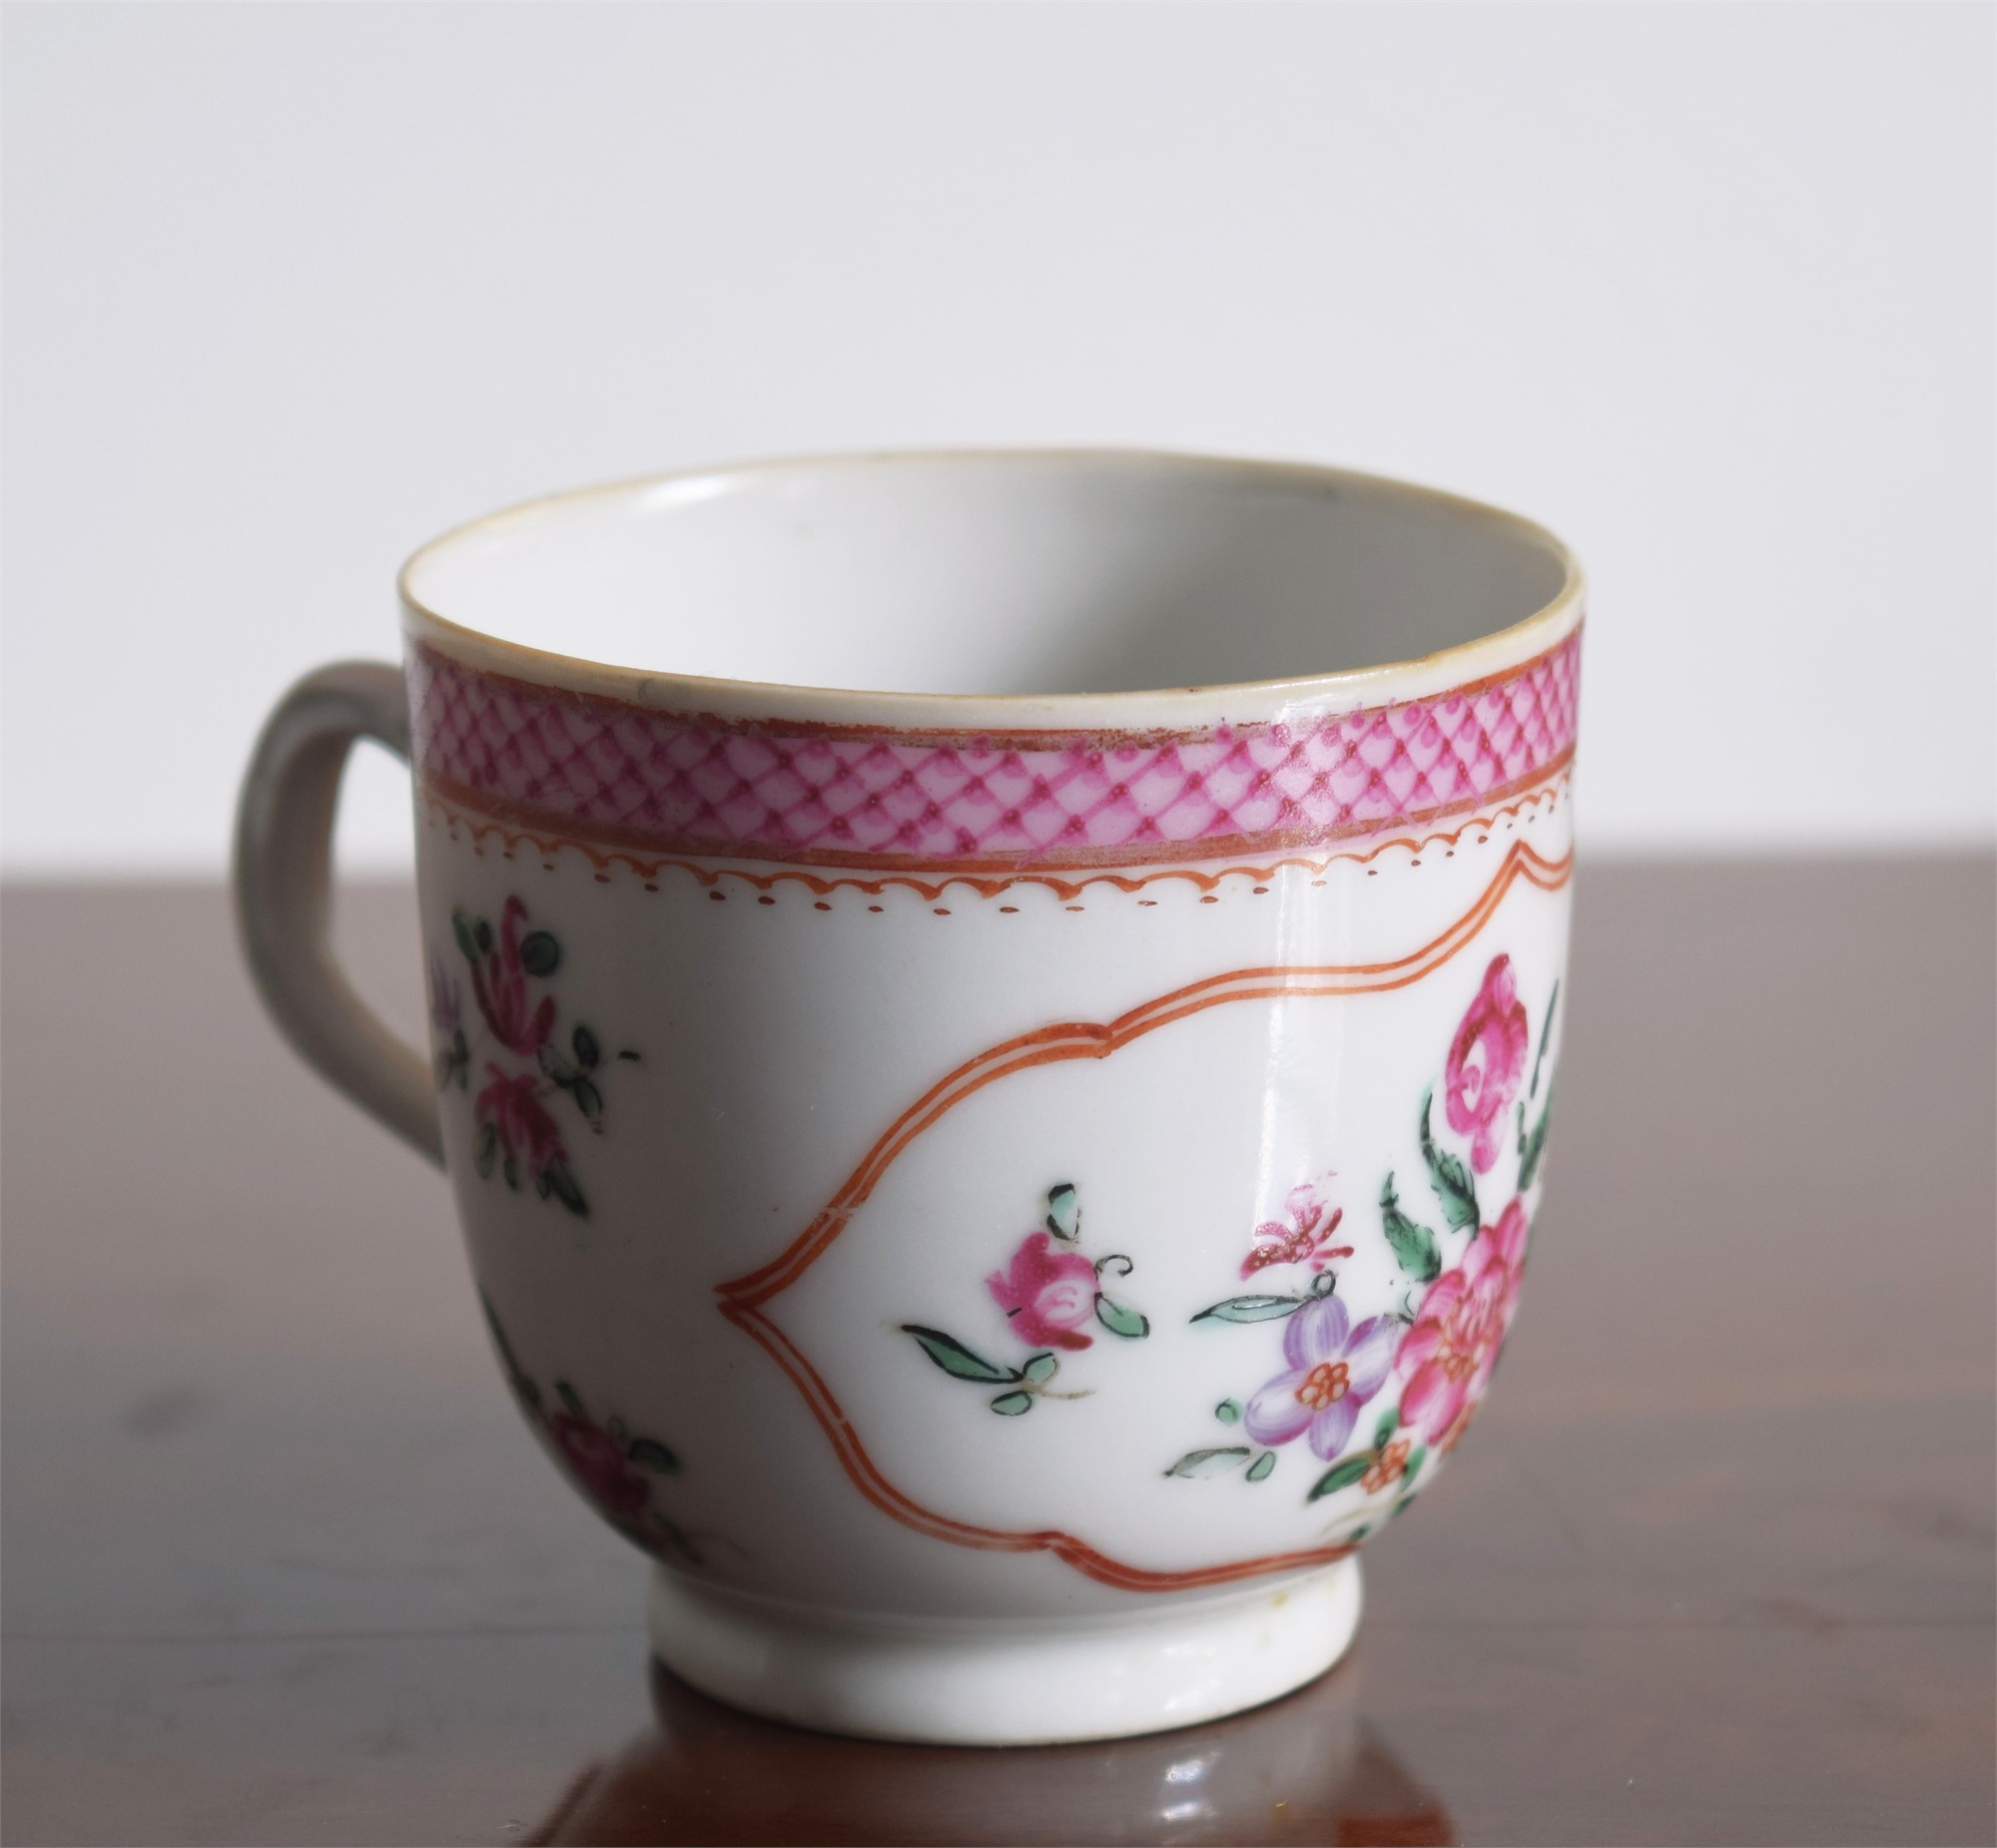 A FR COFFEECUP WITH CENTRAL FLOWER, SMALL PUCE FOLIAGE